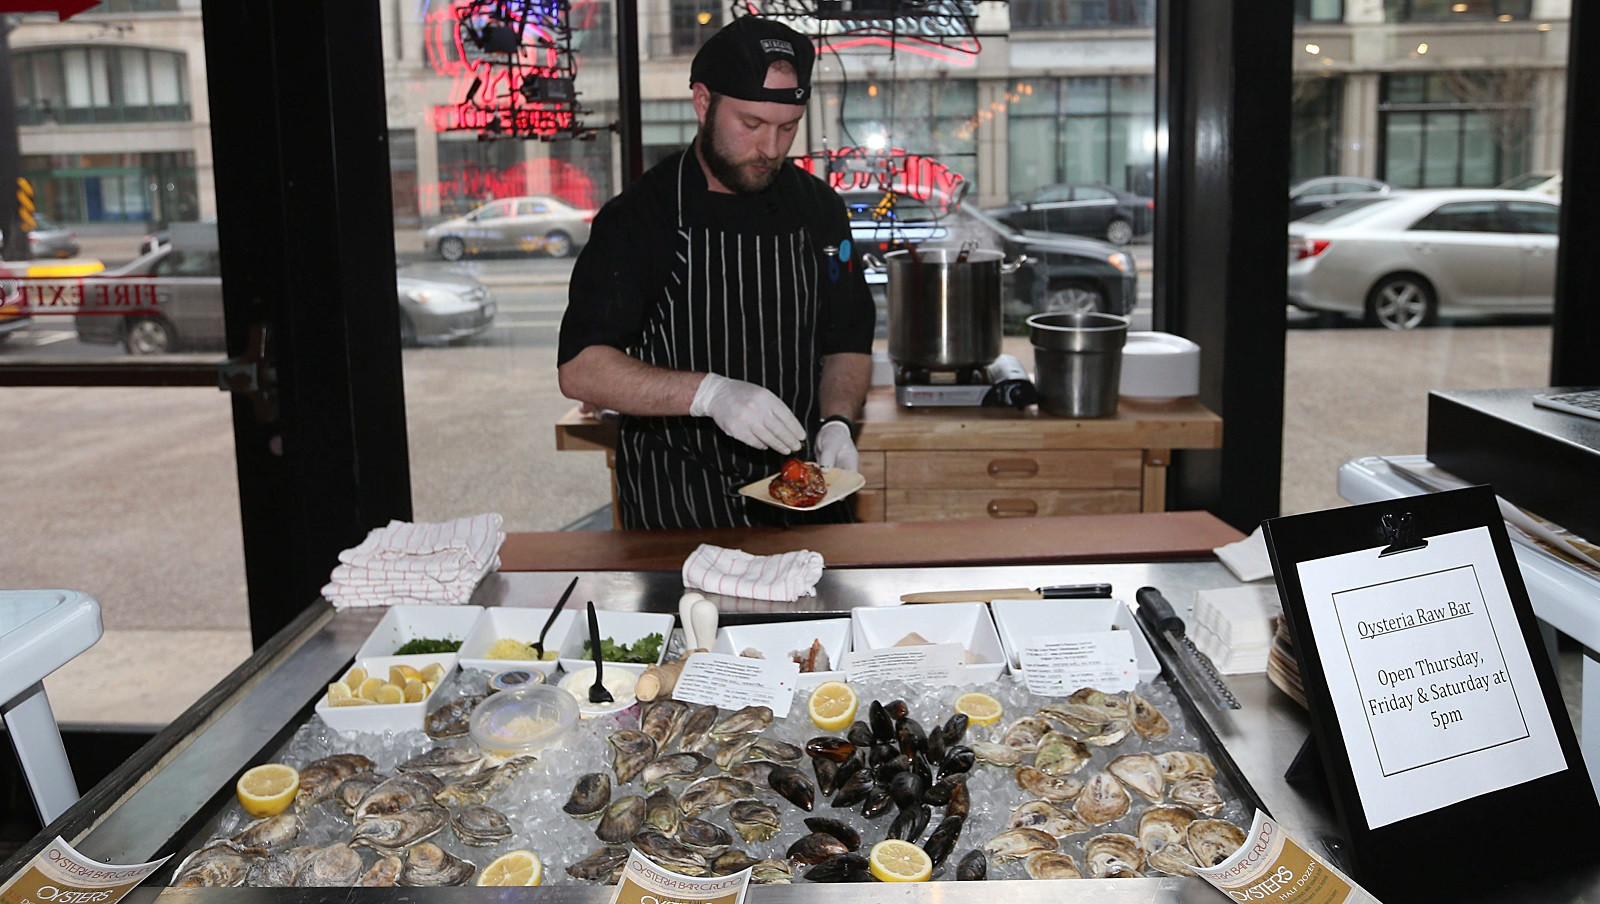 Ken Legnon works with oysters during a previous stint at Oysteria Raw Bar inside EXPO Market. (Sharon Cantillon/Buffalo News)